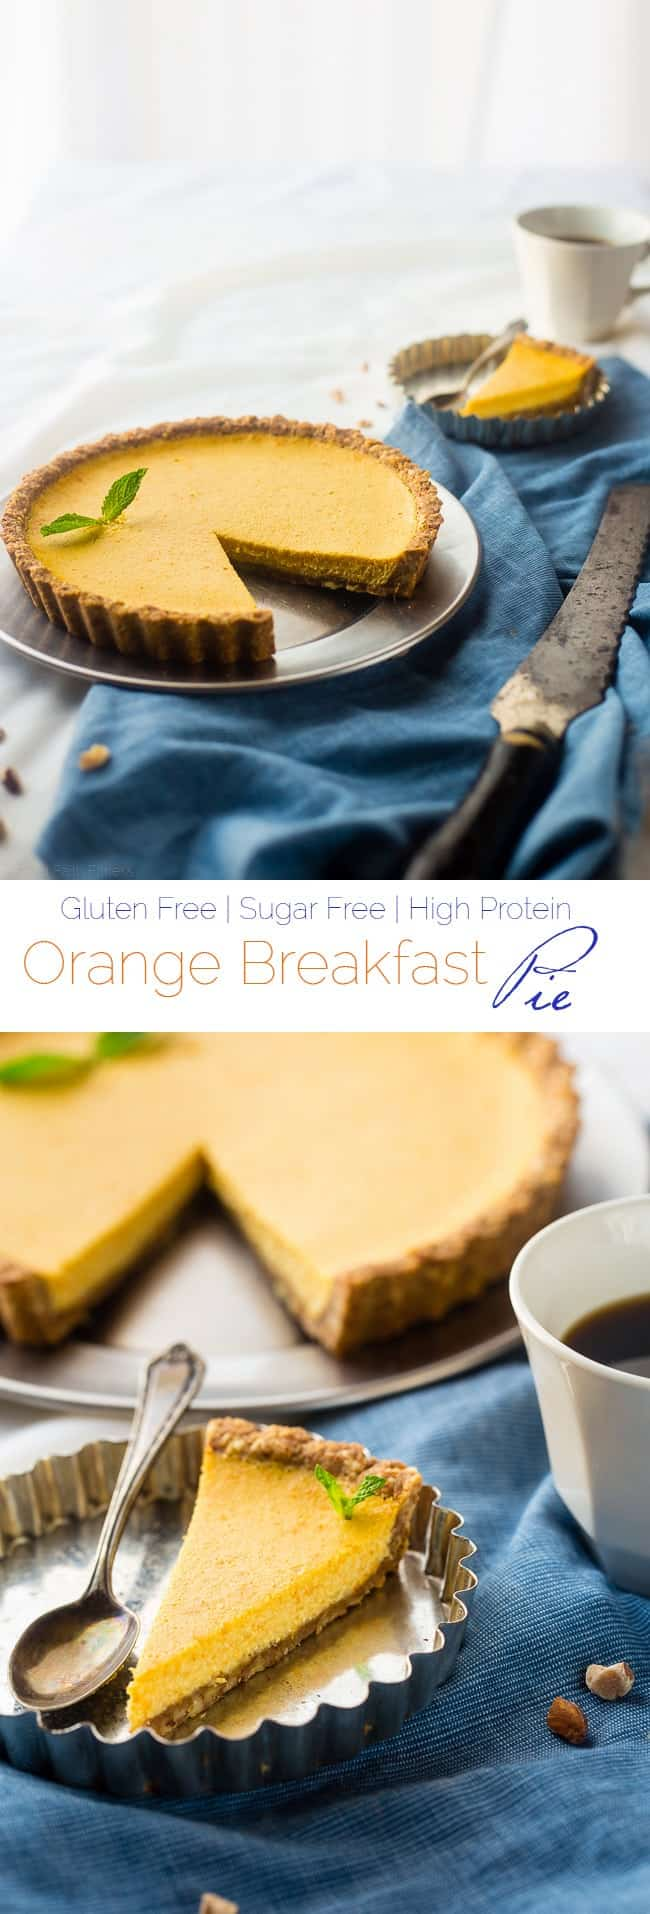 Gluten Free Orange Pie with Almond Crust - This easy, healthy orange pie uses a secret ingredient to make it PACKED with protein and low in calories! It's perfect for breakfast, snack or dessert! | Foodfaithfitness.com | @FoodFaithFit